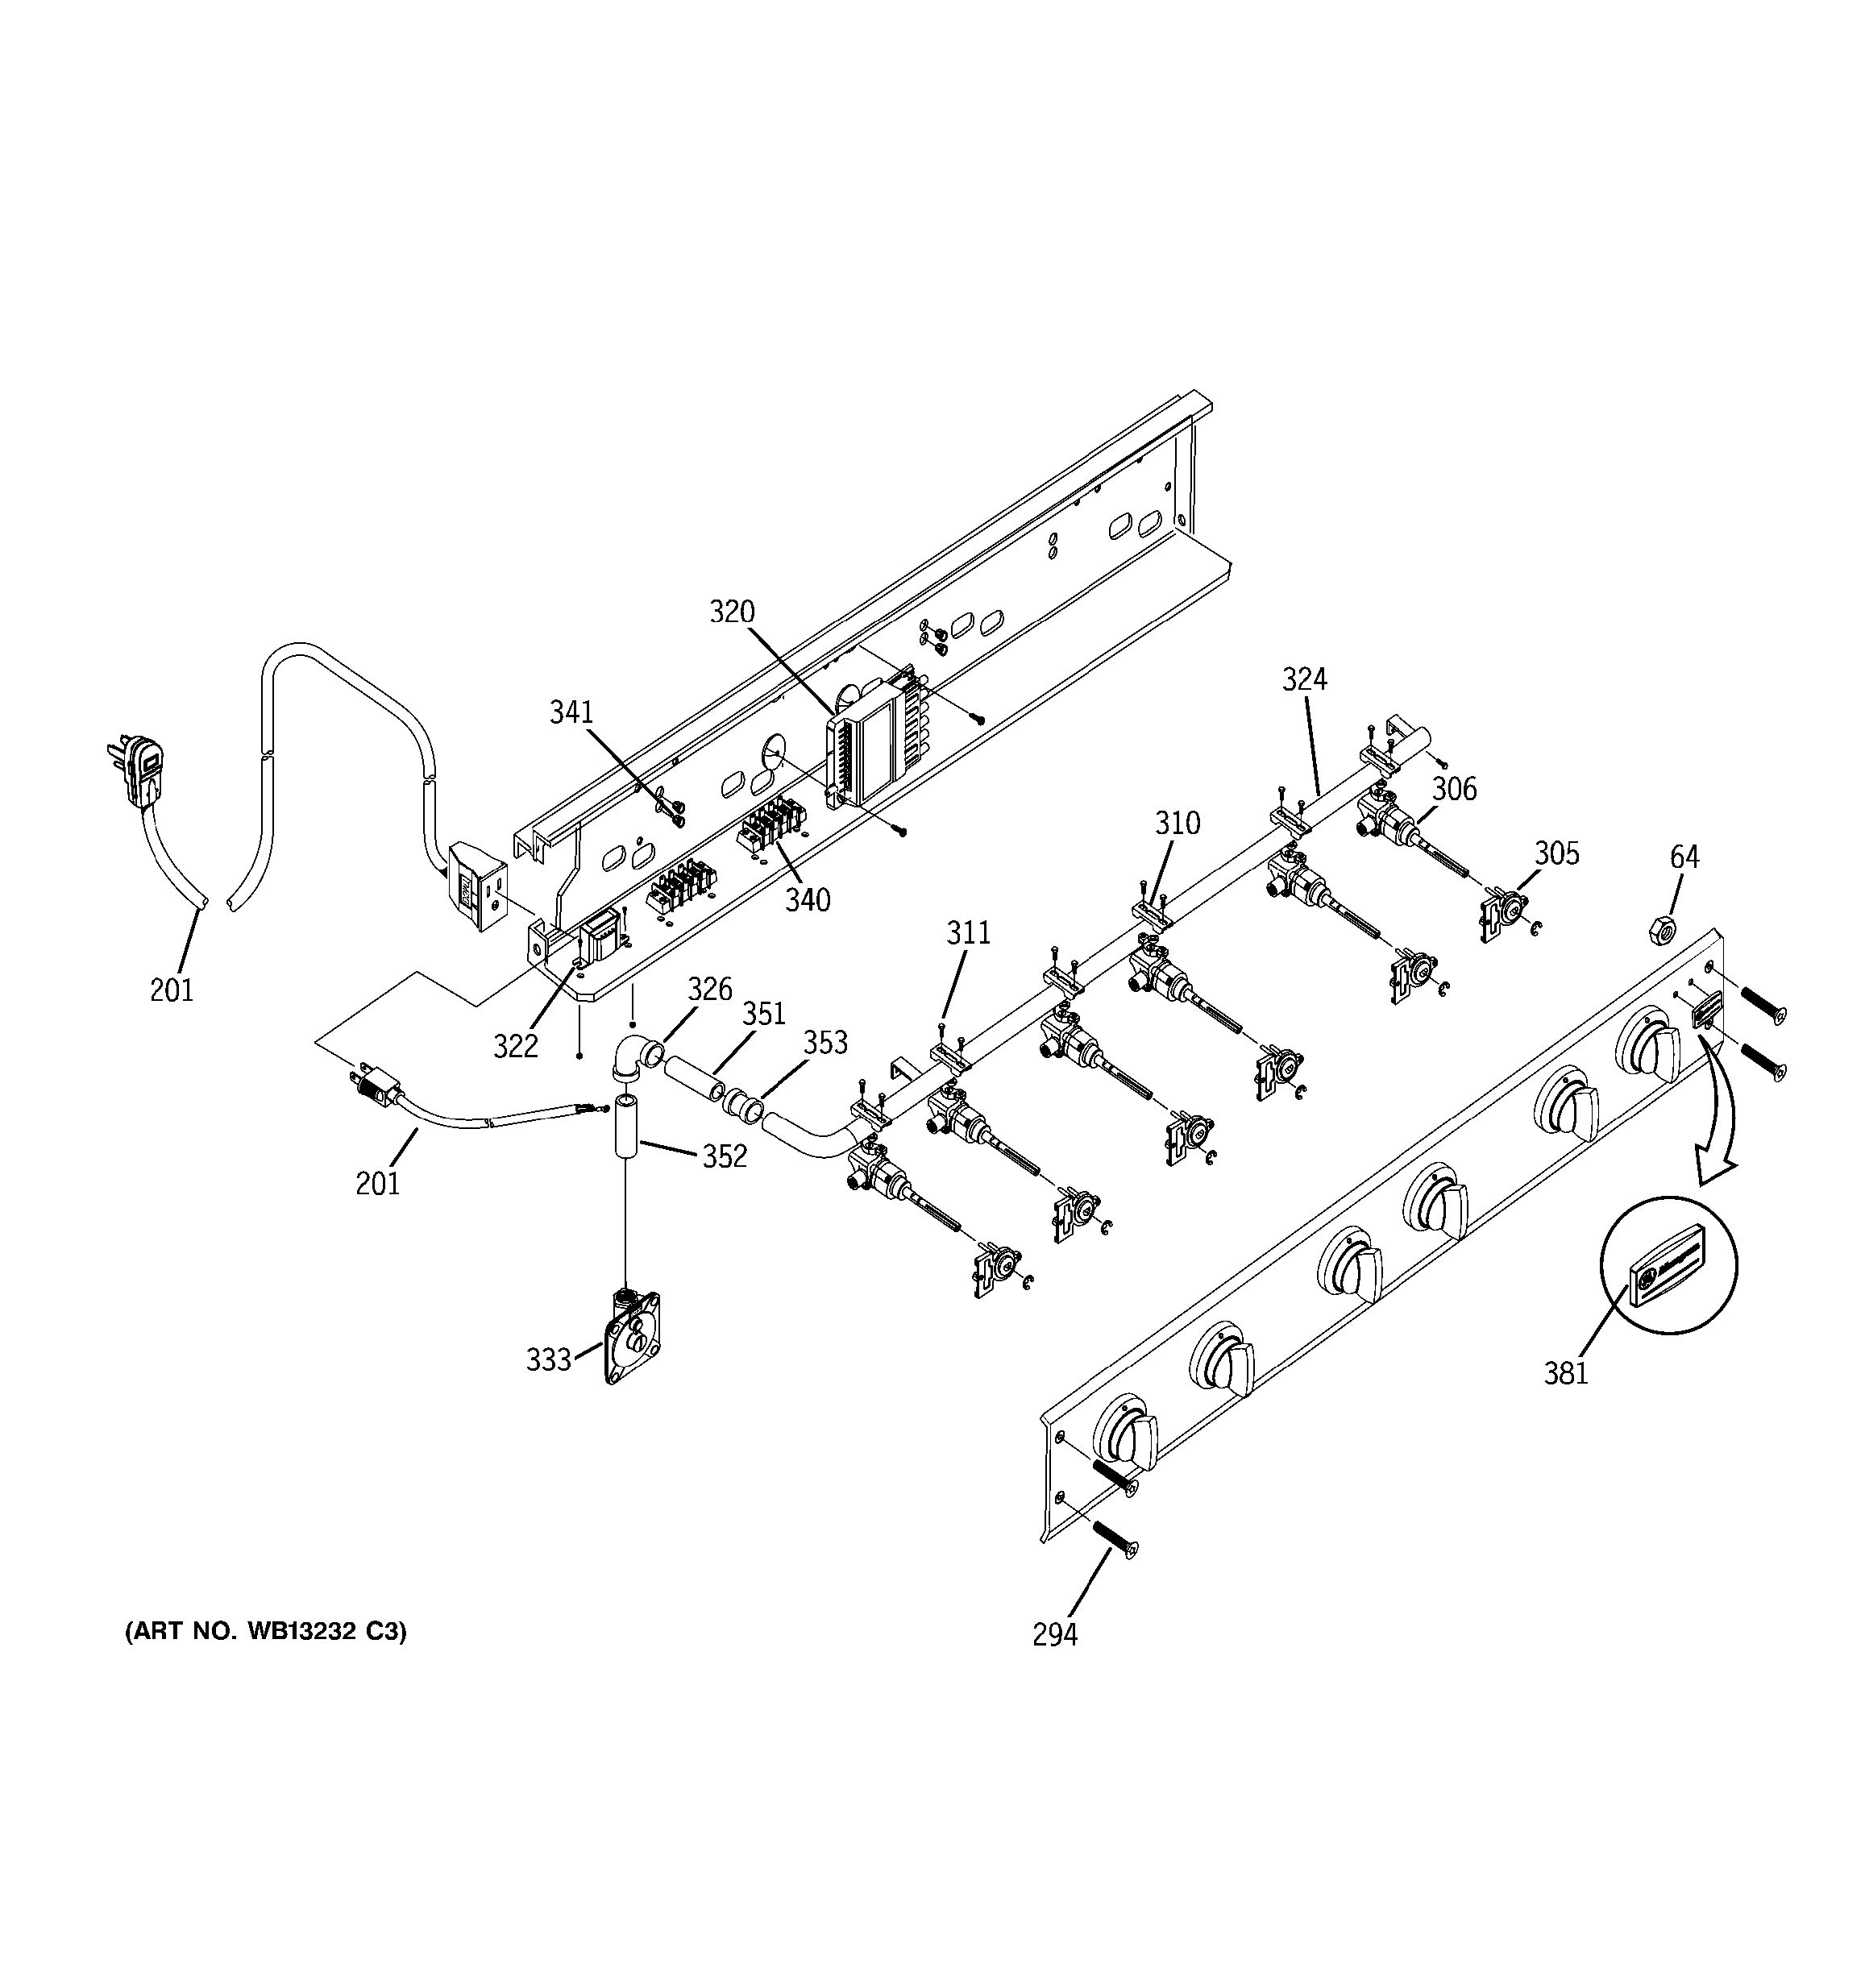 manifold assembly diagram and parts list for ge rangeparts model